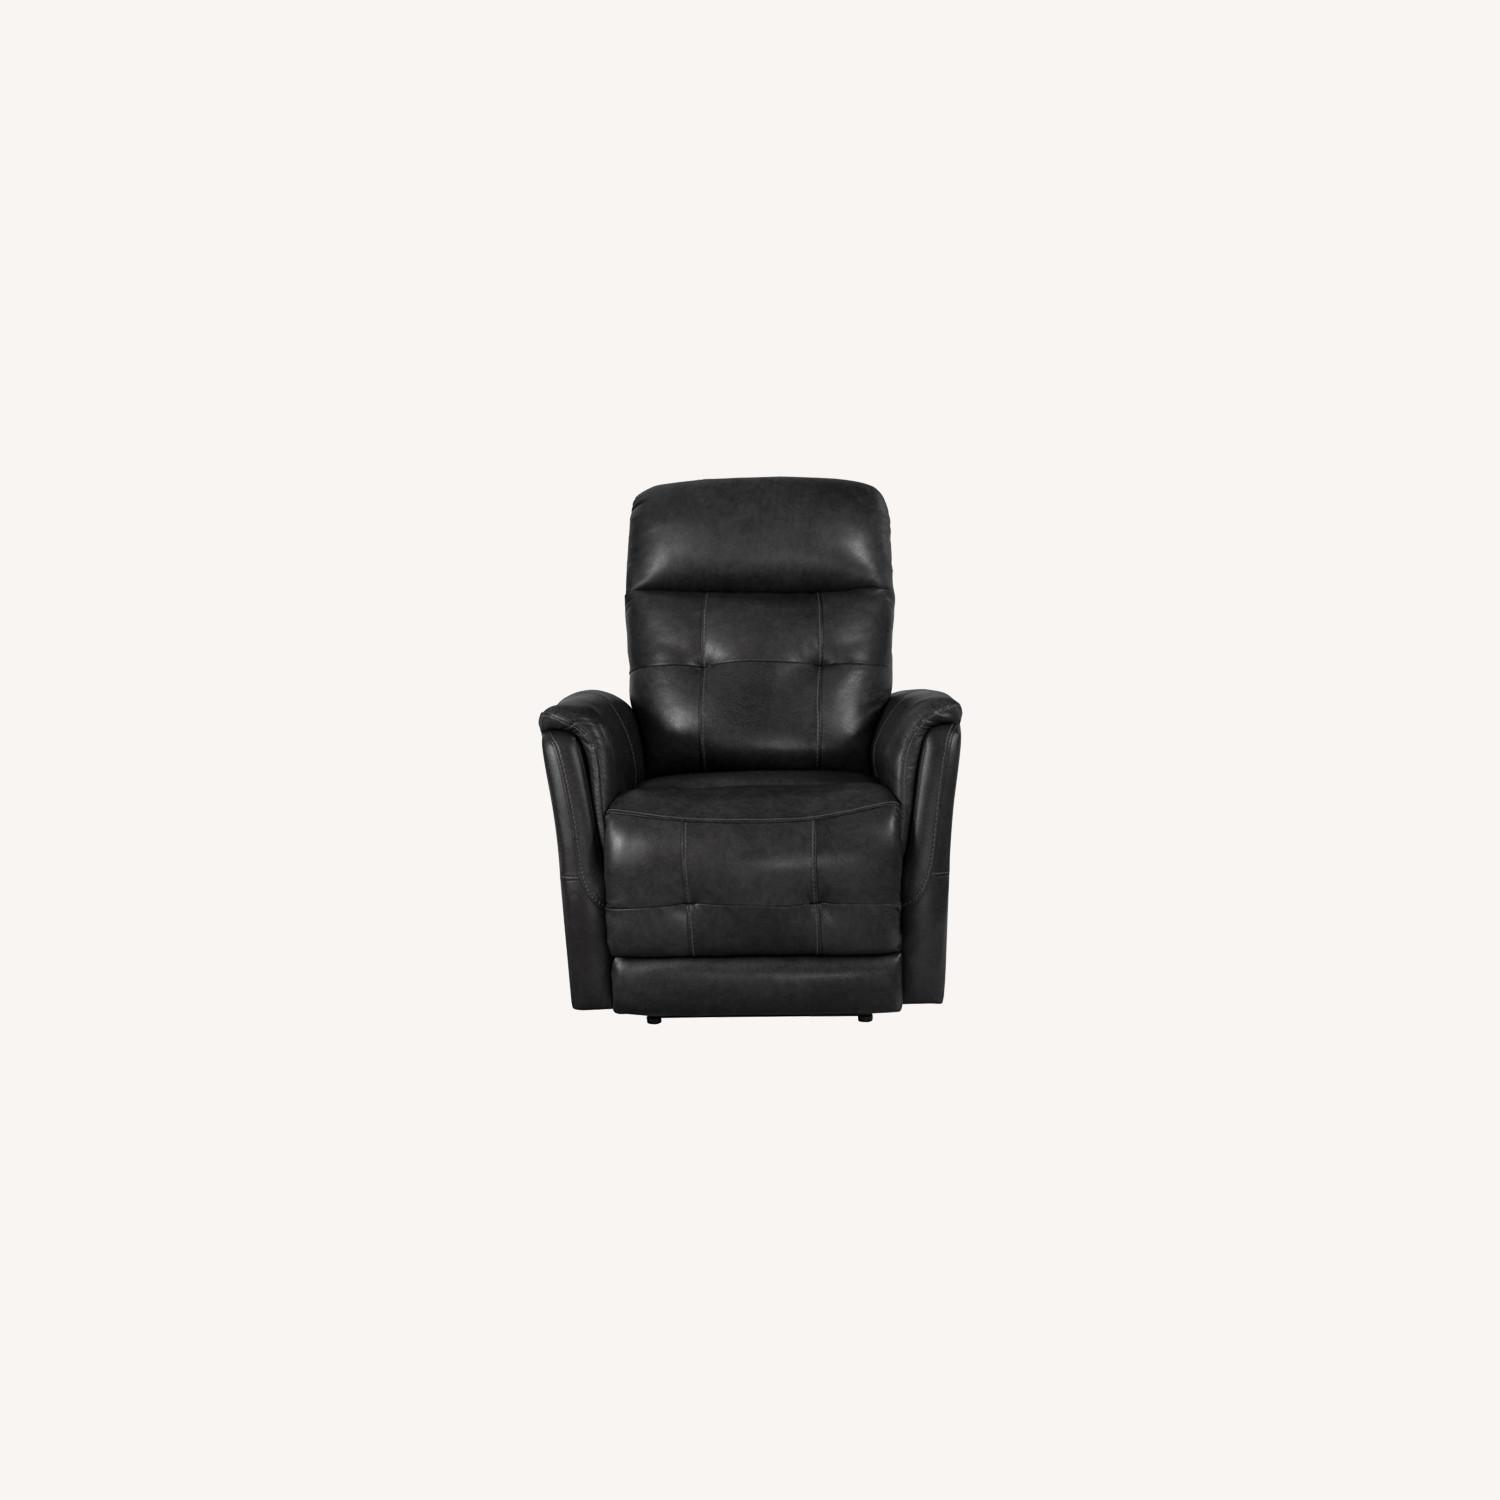 Power Recliner In Grey Leather Upholstery - image-9